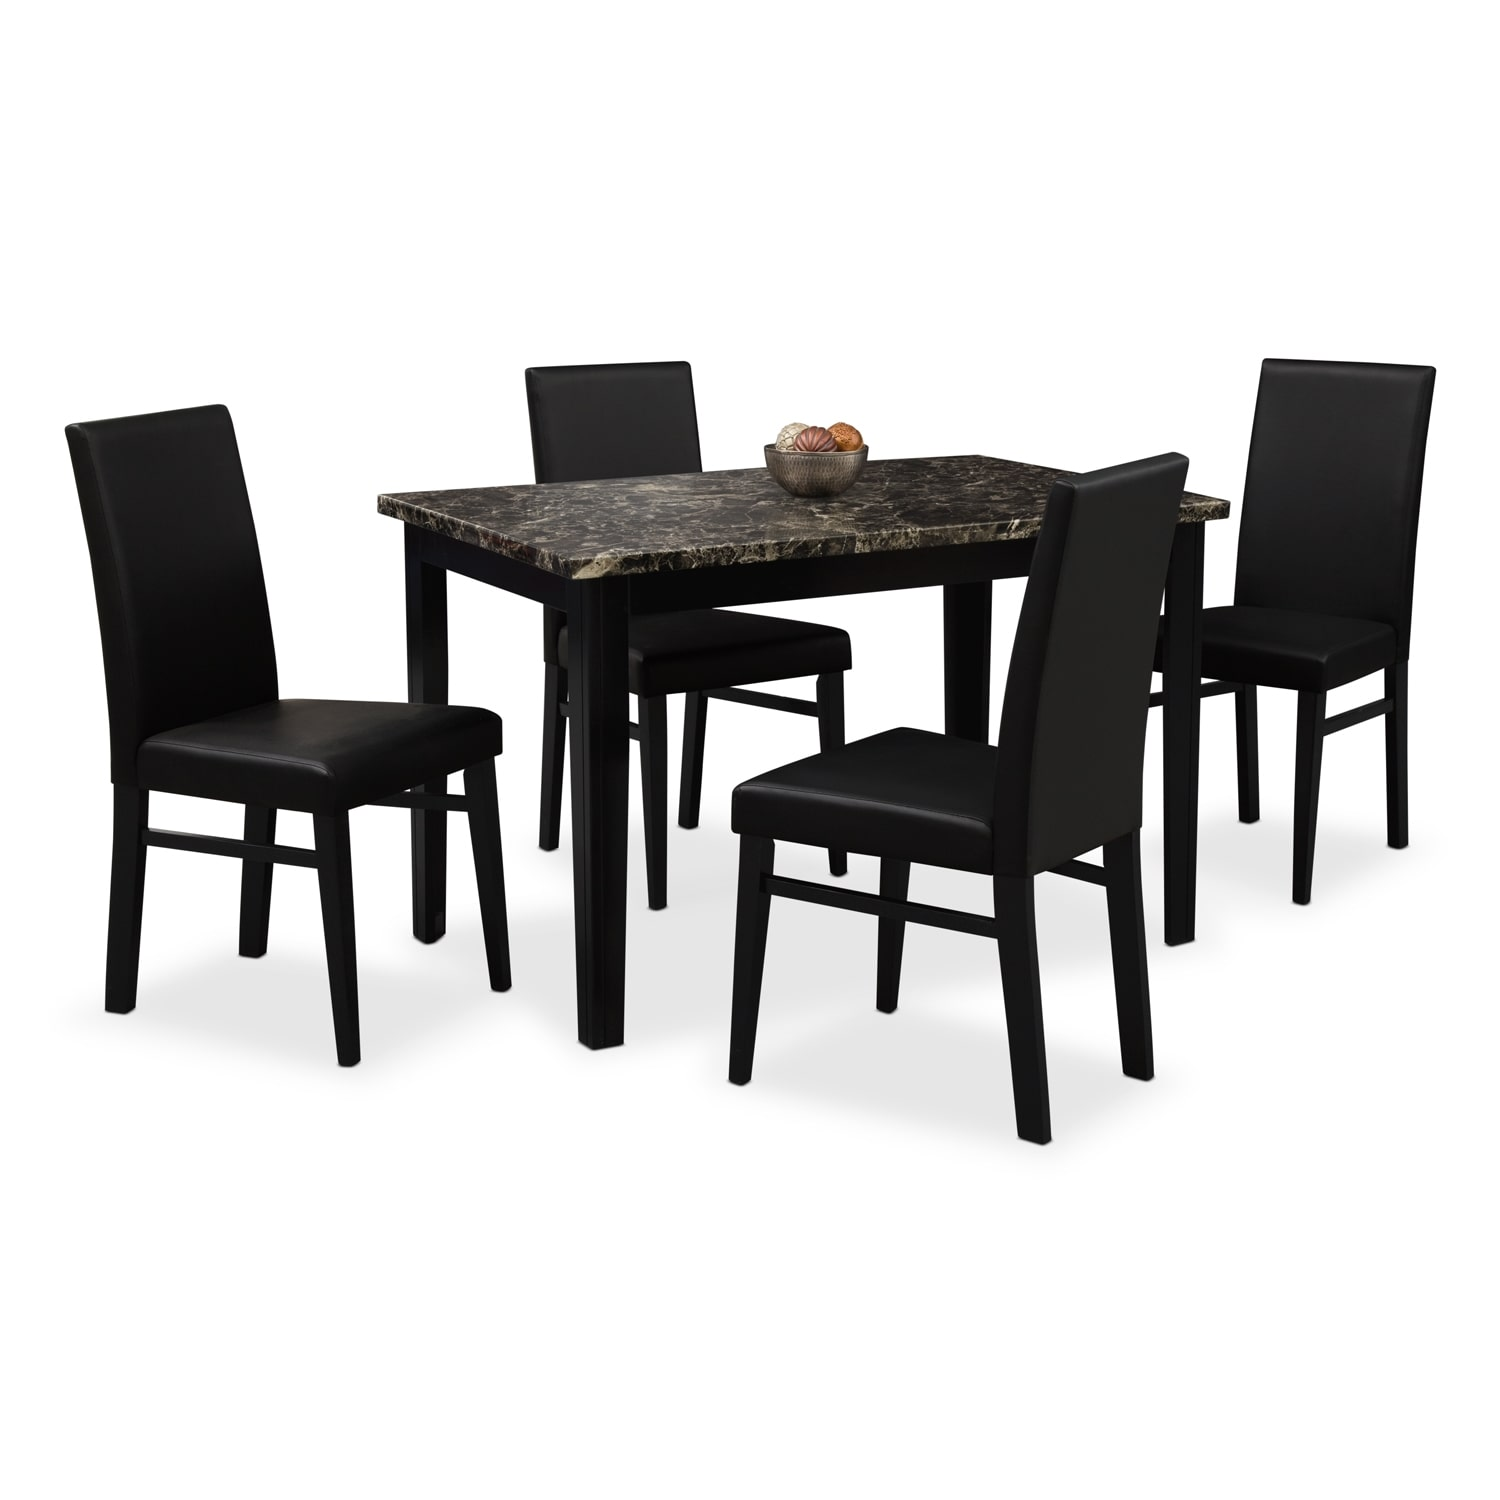 Shadow table and 4 chairs black american signature for Black dining sets with 4 chairs